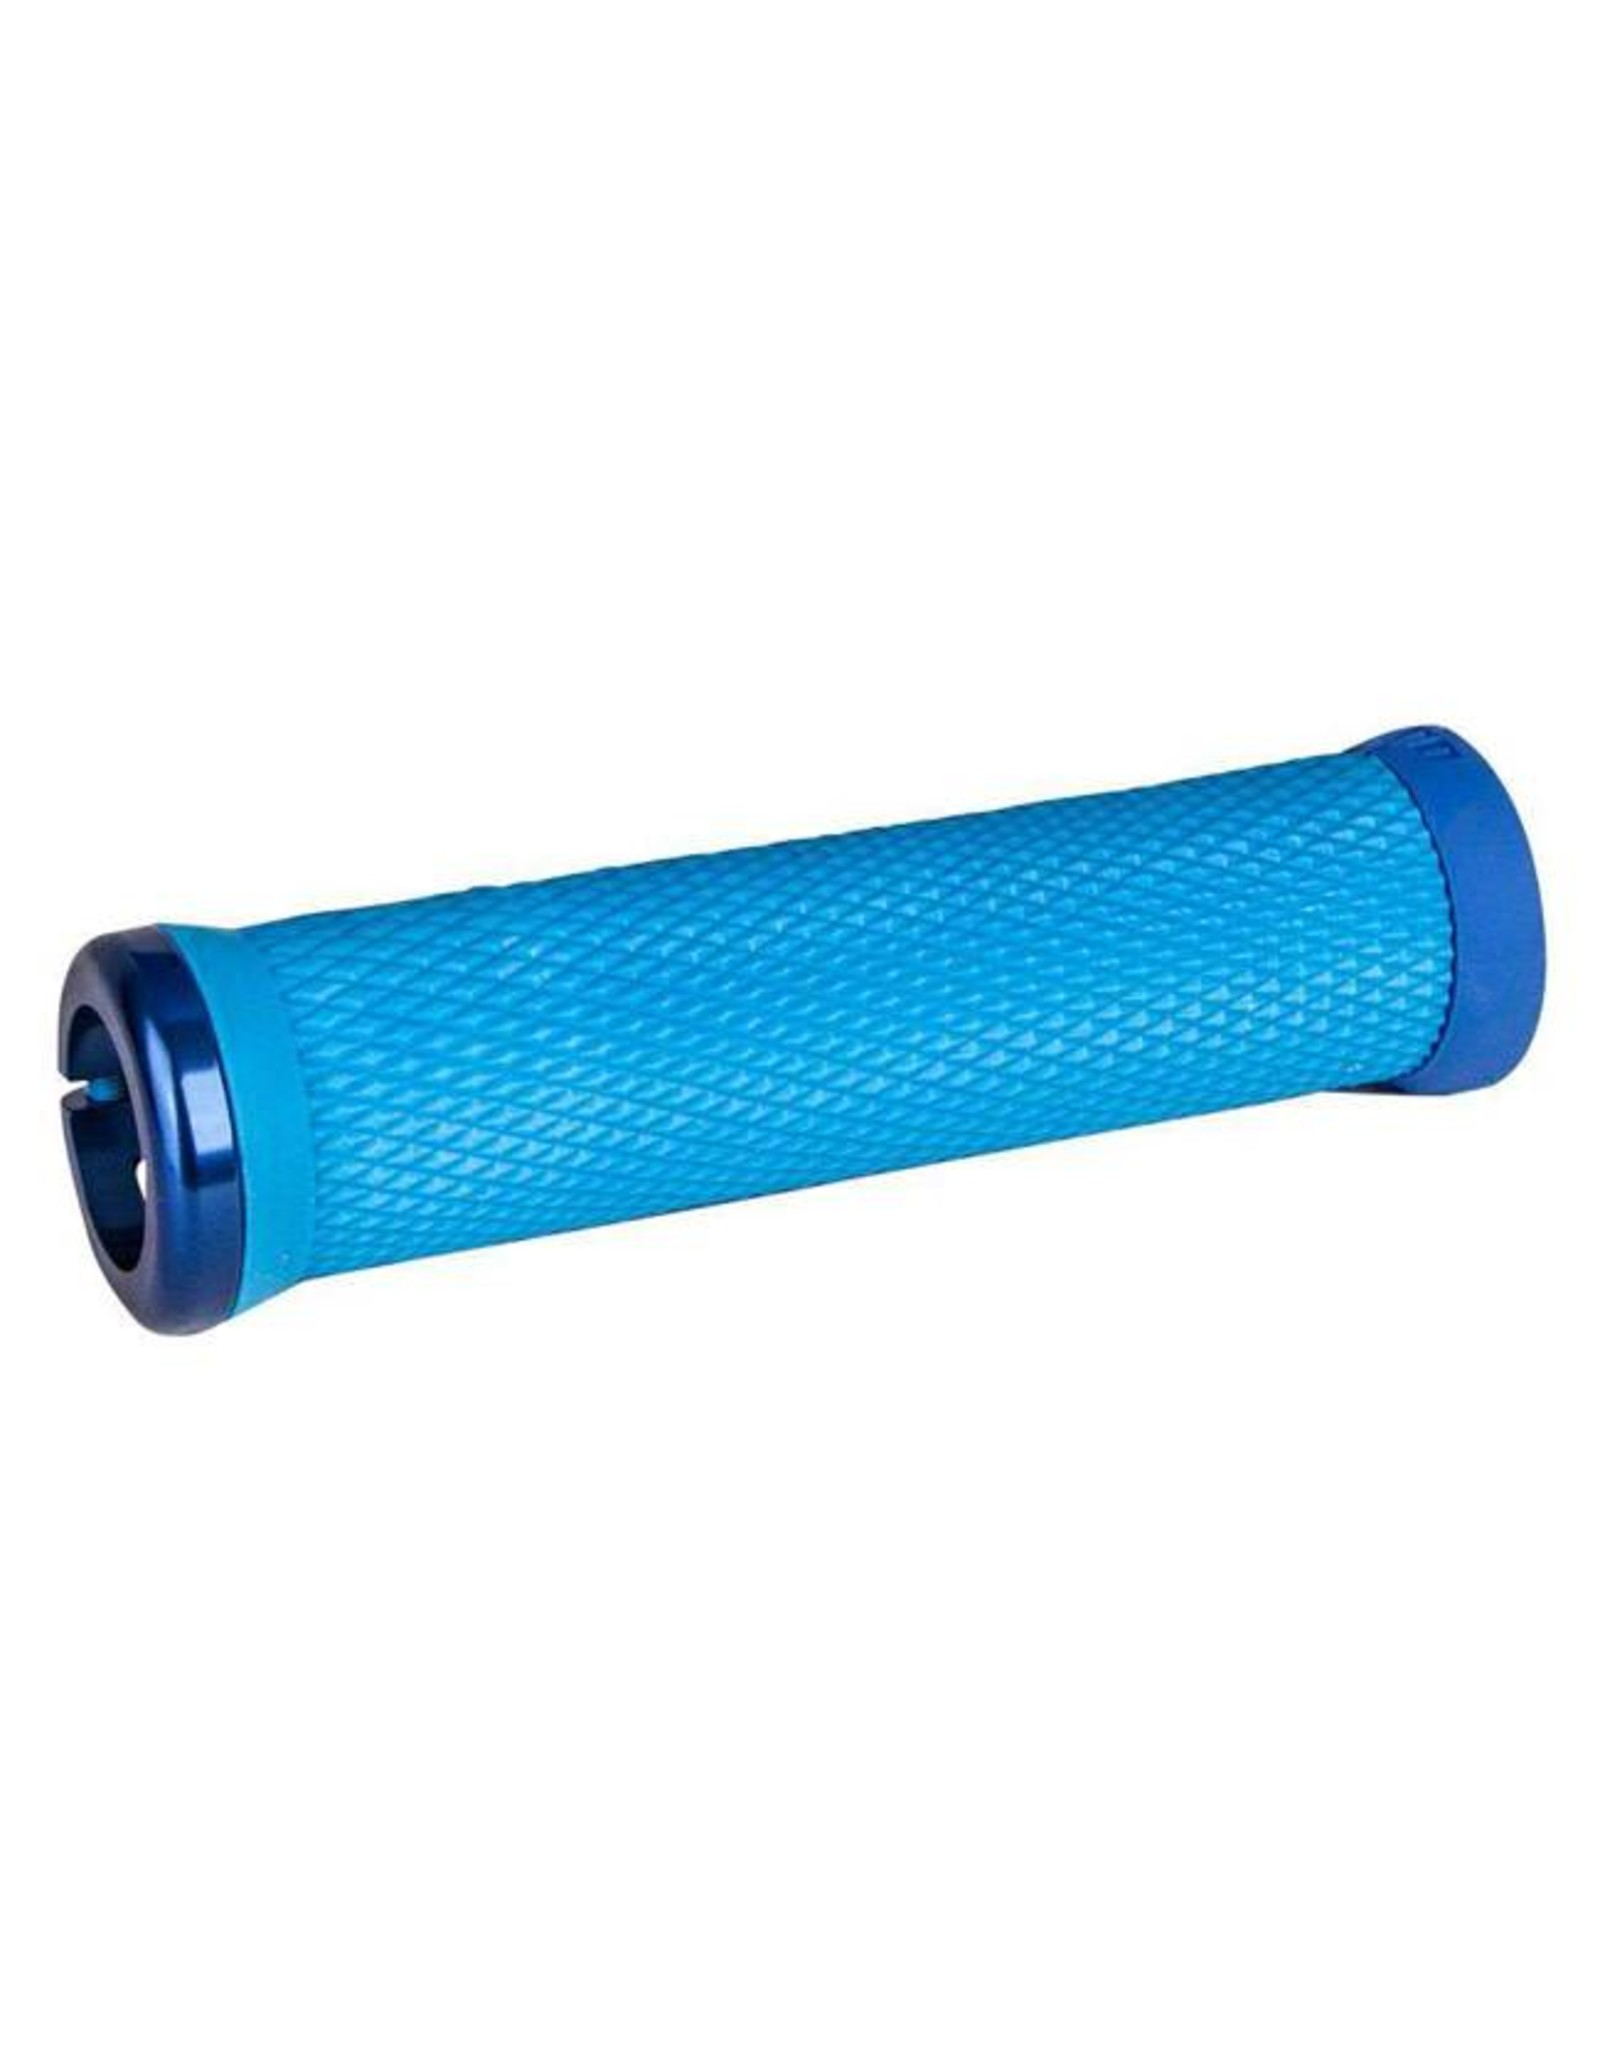 ODI ODI Elite Motion Lock-On Grips Light Blue with Blue Clamps